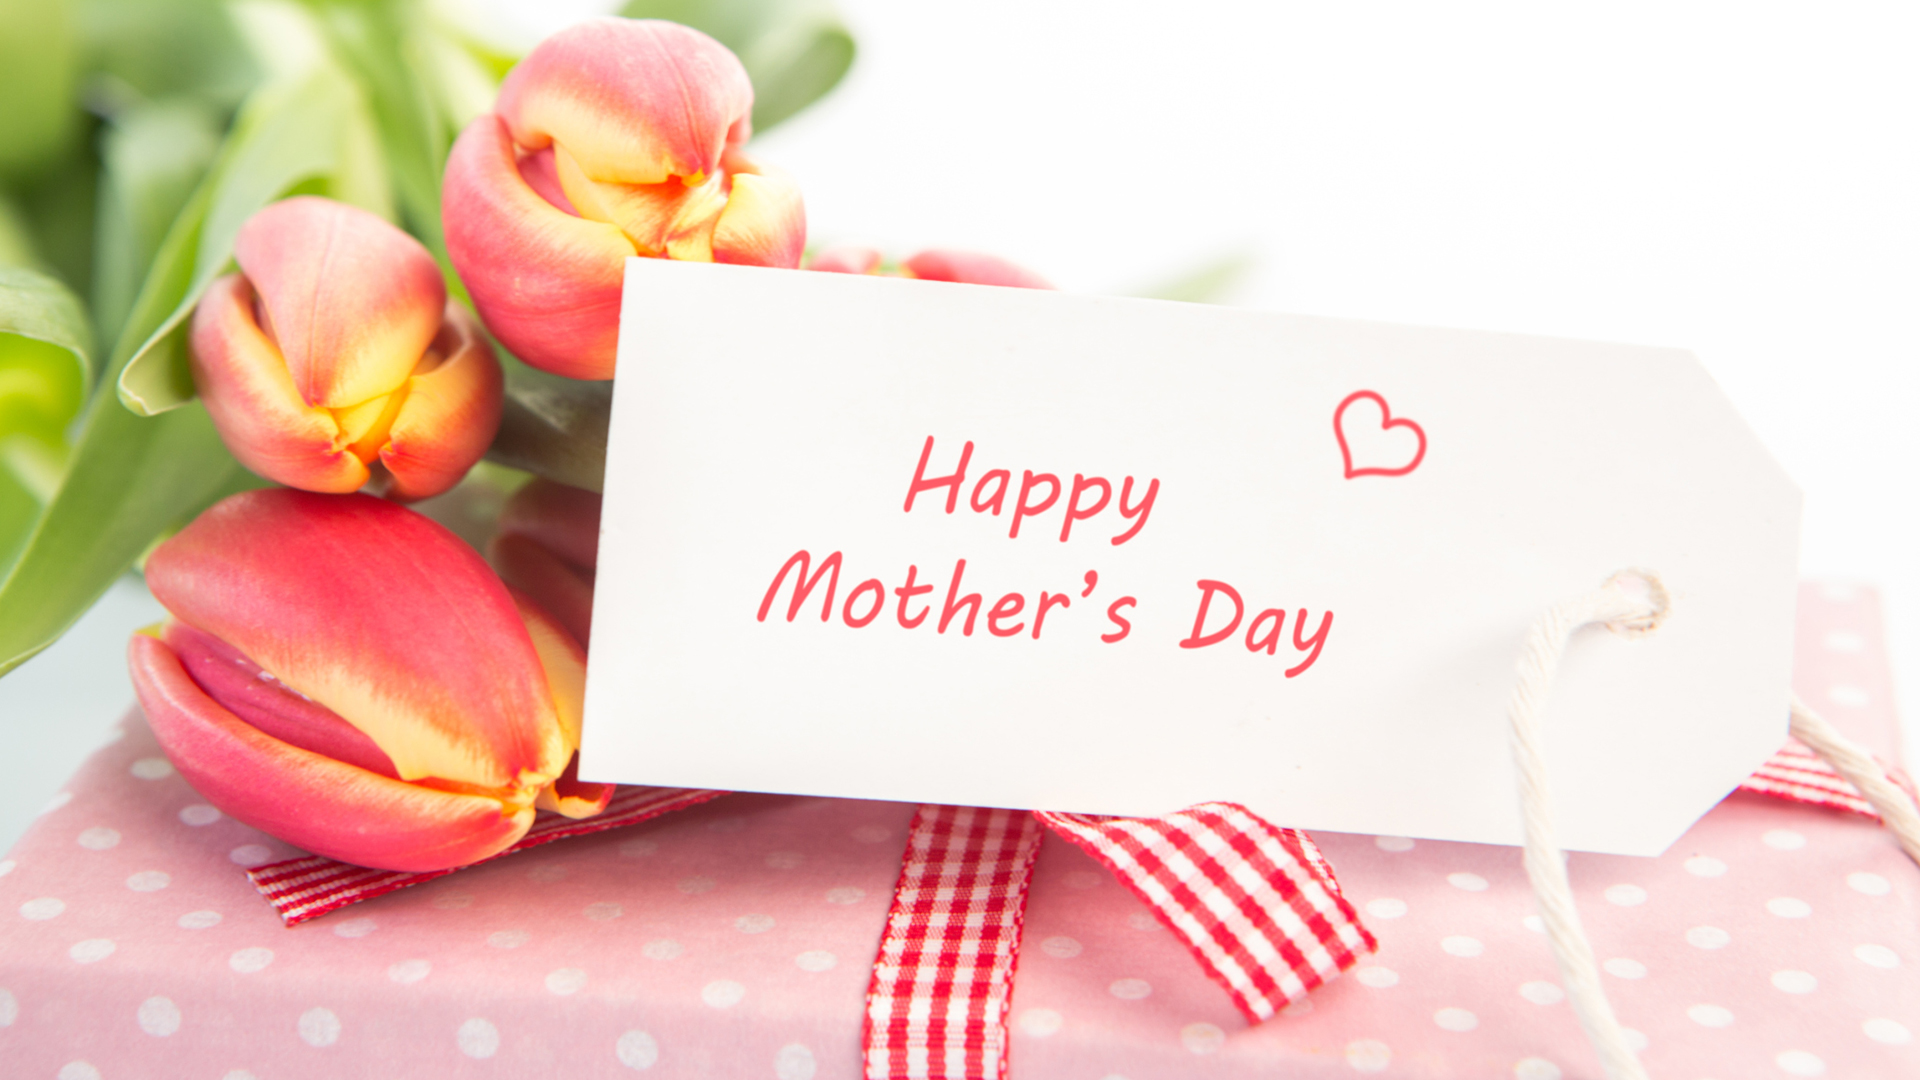 Mothers day gift and flowers | Sheknows.com